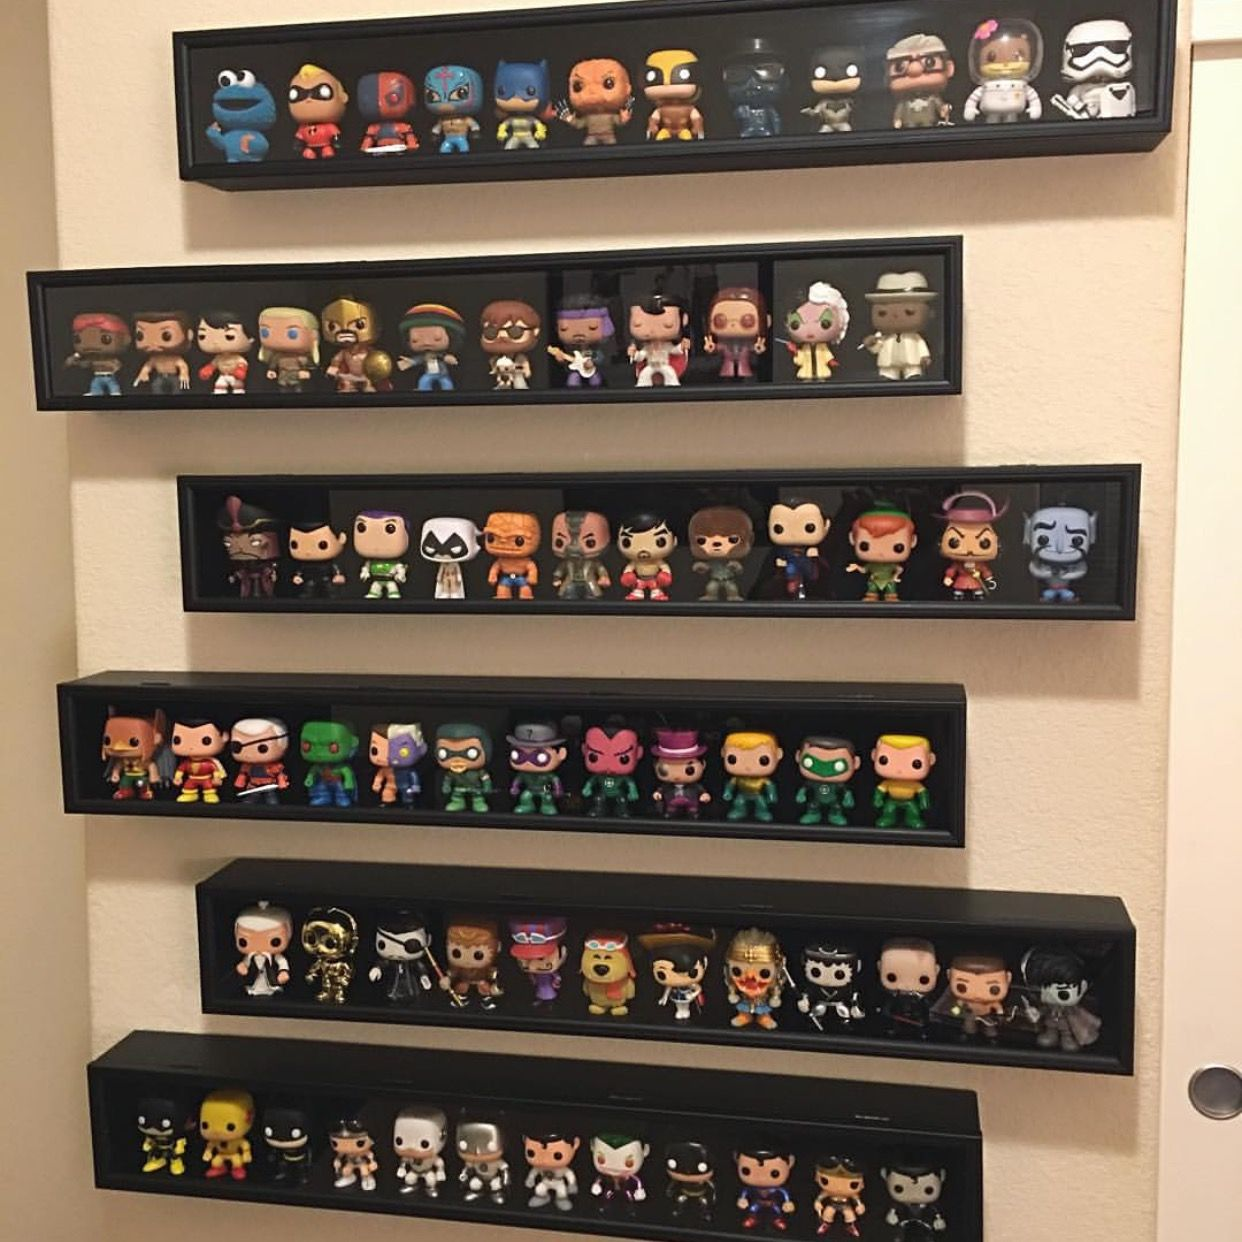 pin by de 39 amber andrade ortiz on home ideas pinterest funko pop and pop figurine. Black Bedroom Furniture Sets. Home Design Ideas